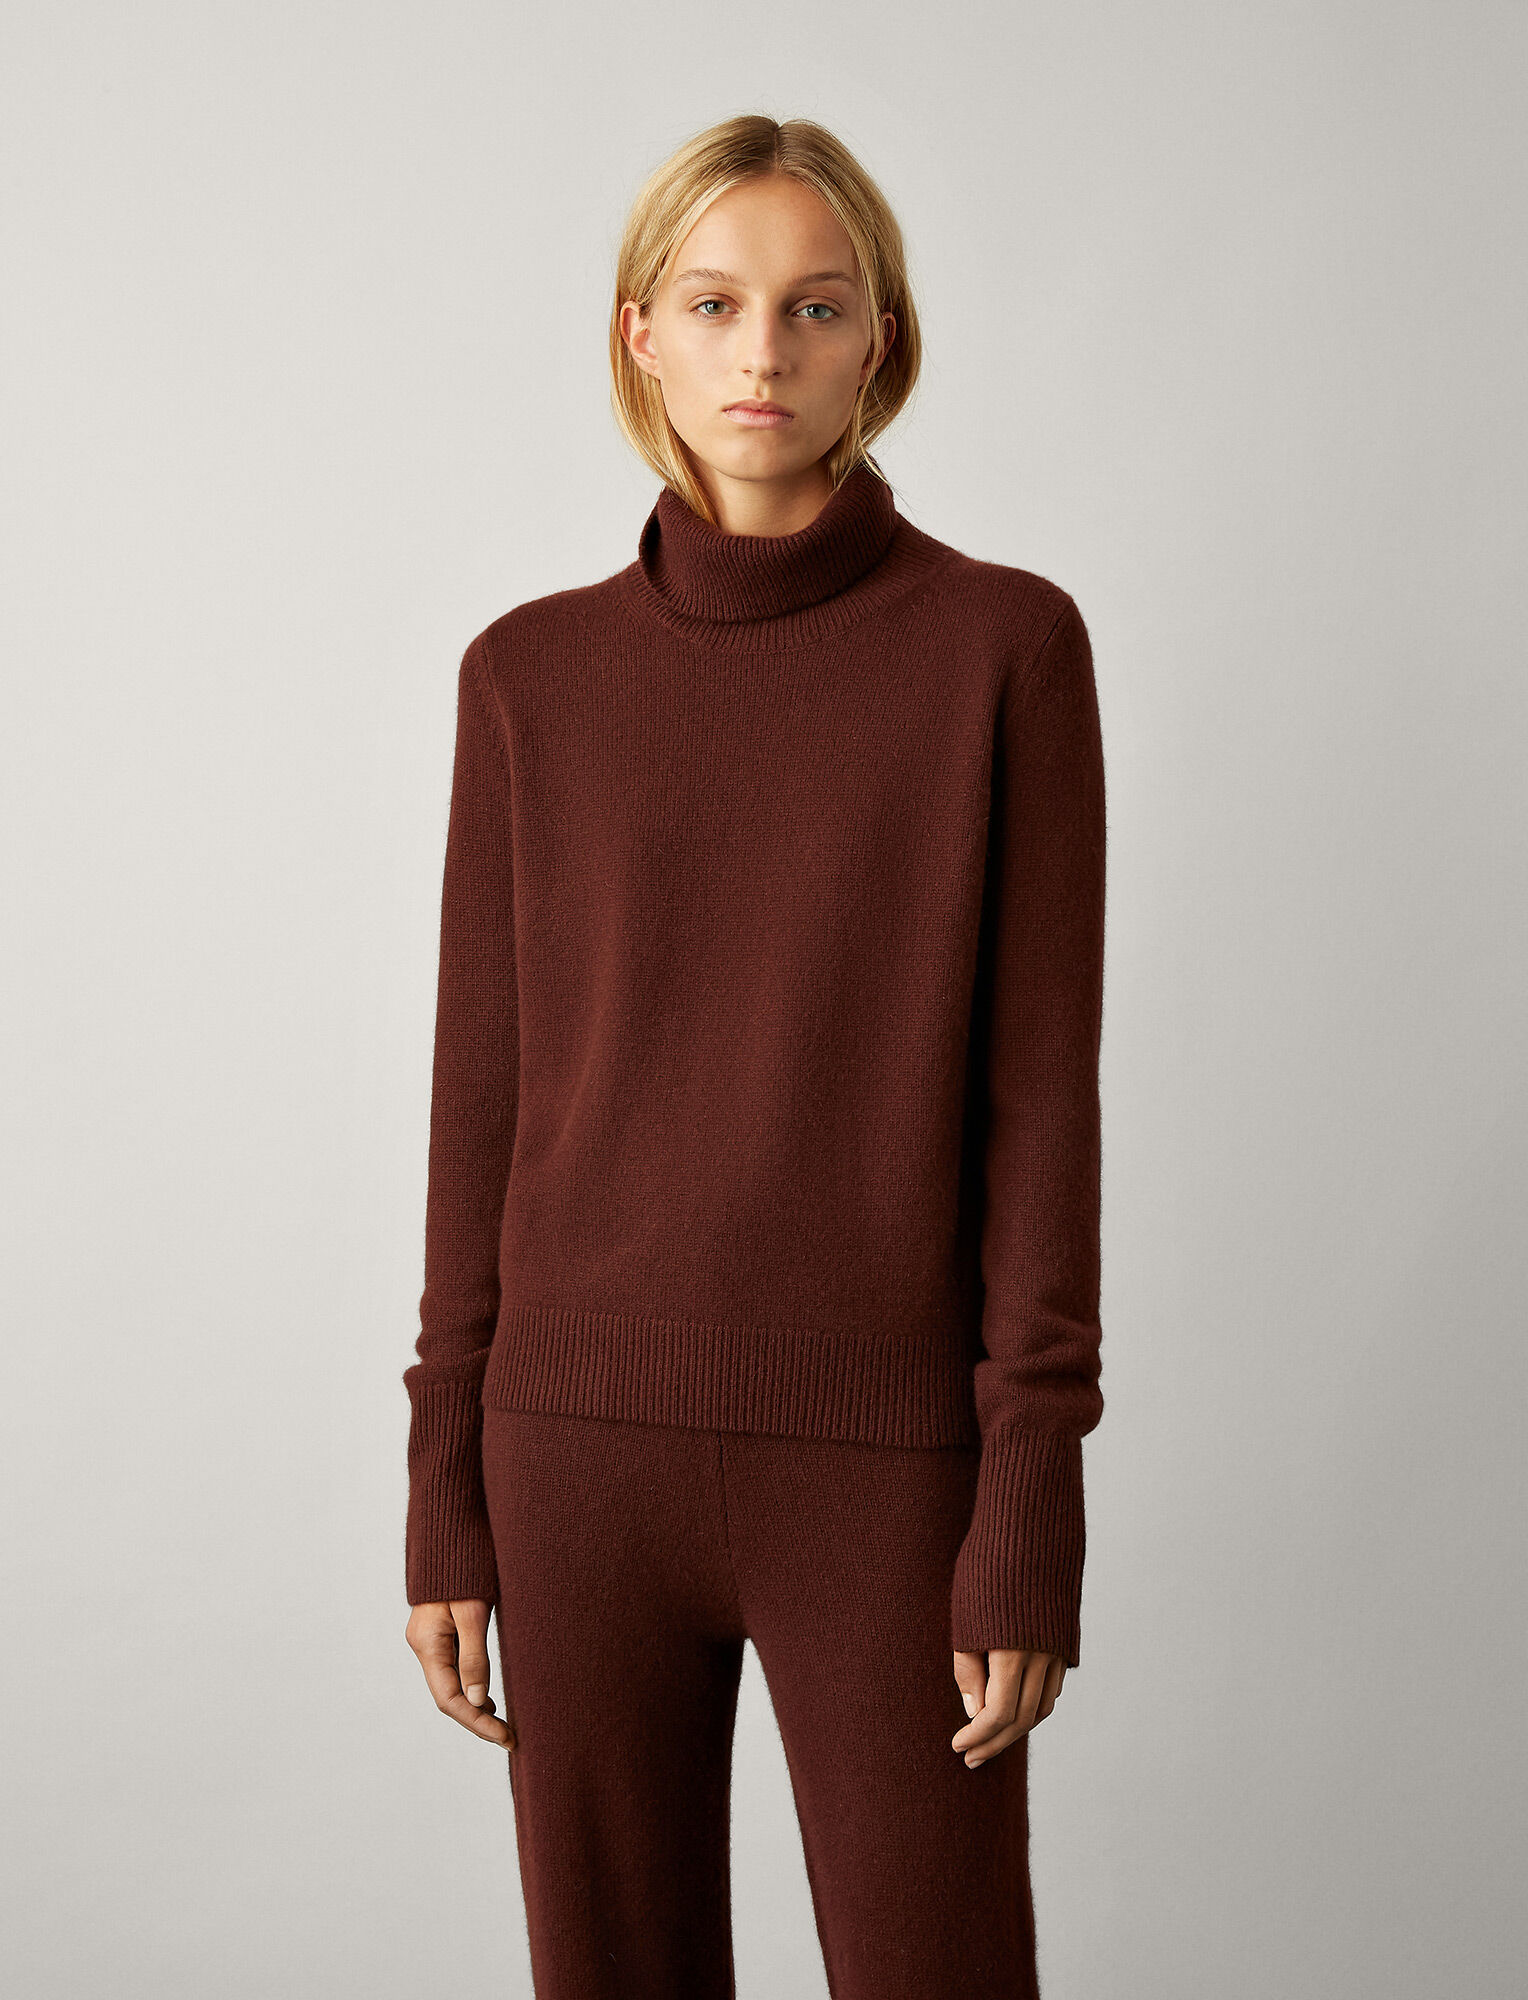 Joseph, High Neck Pure Cashmere Knit, in MAROON